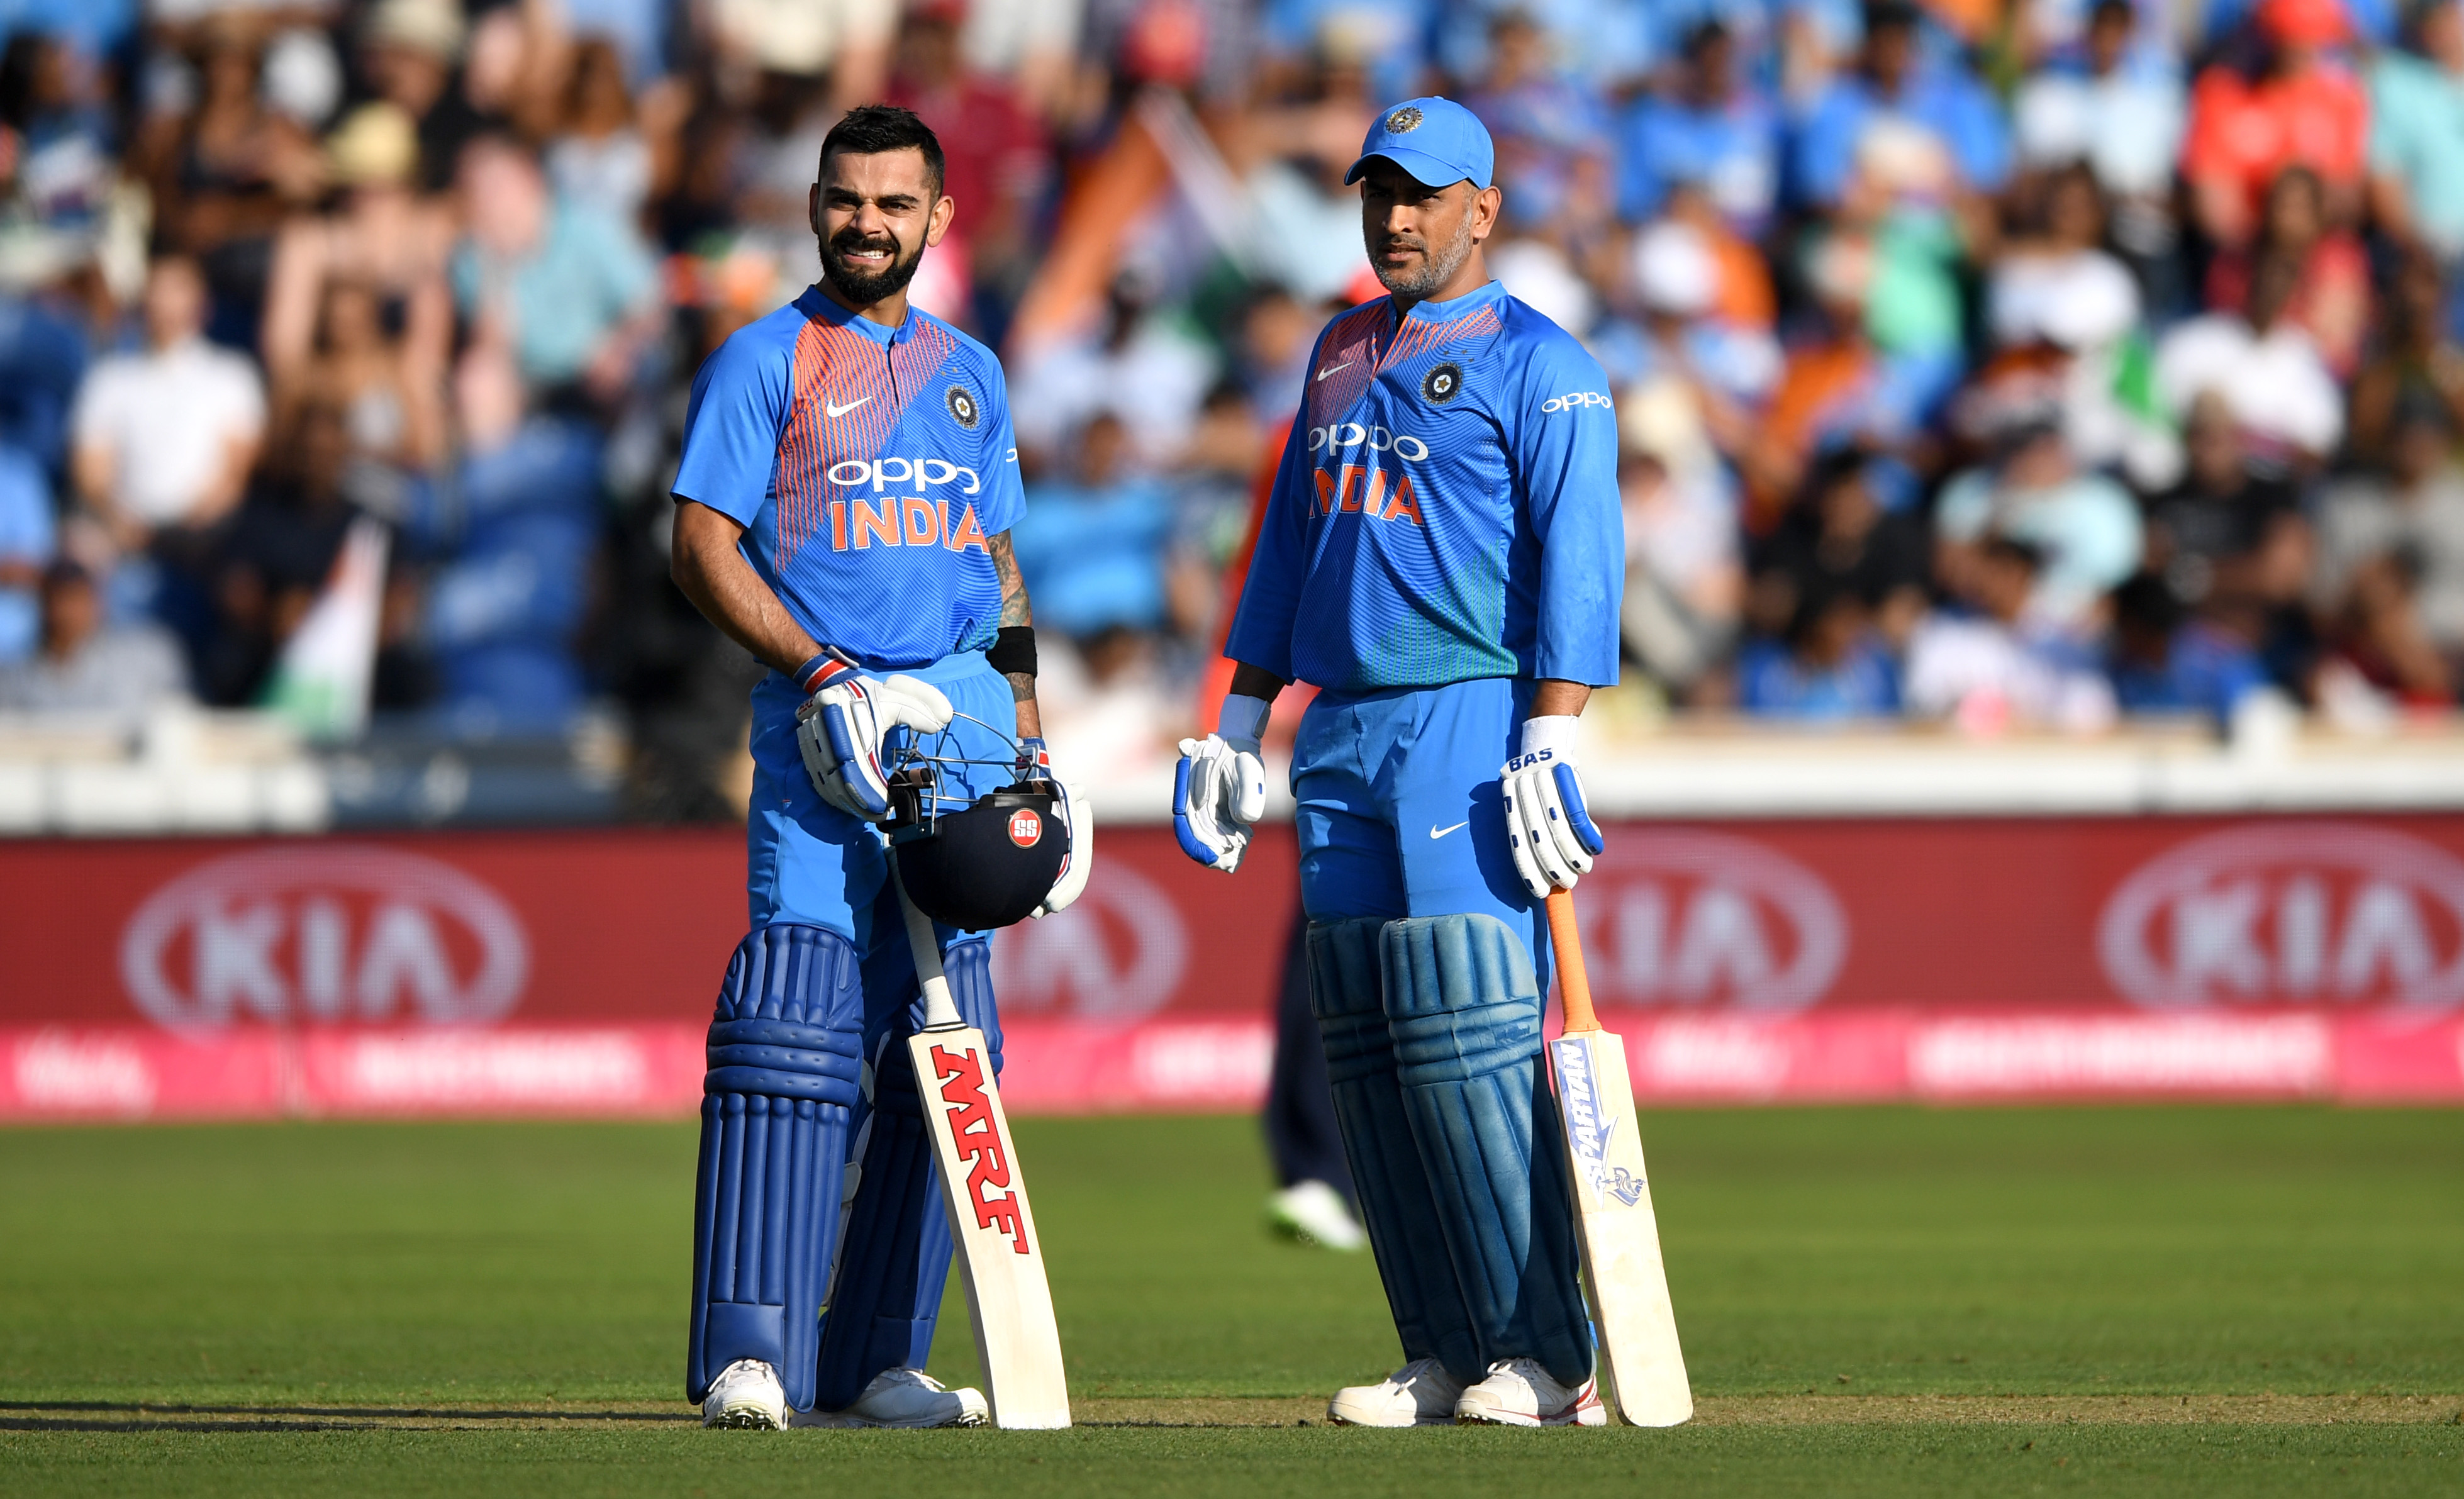 Five takeaways from India's CWC 2019 squad